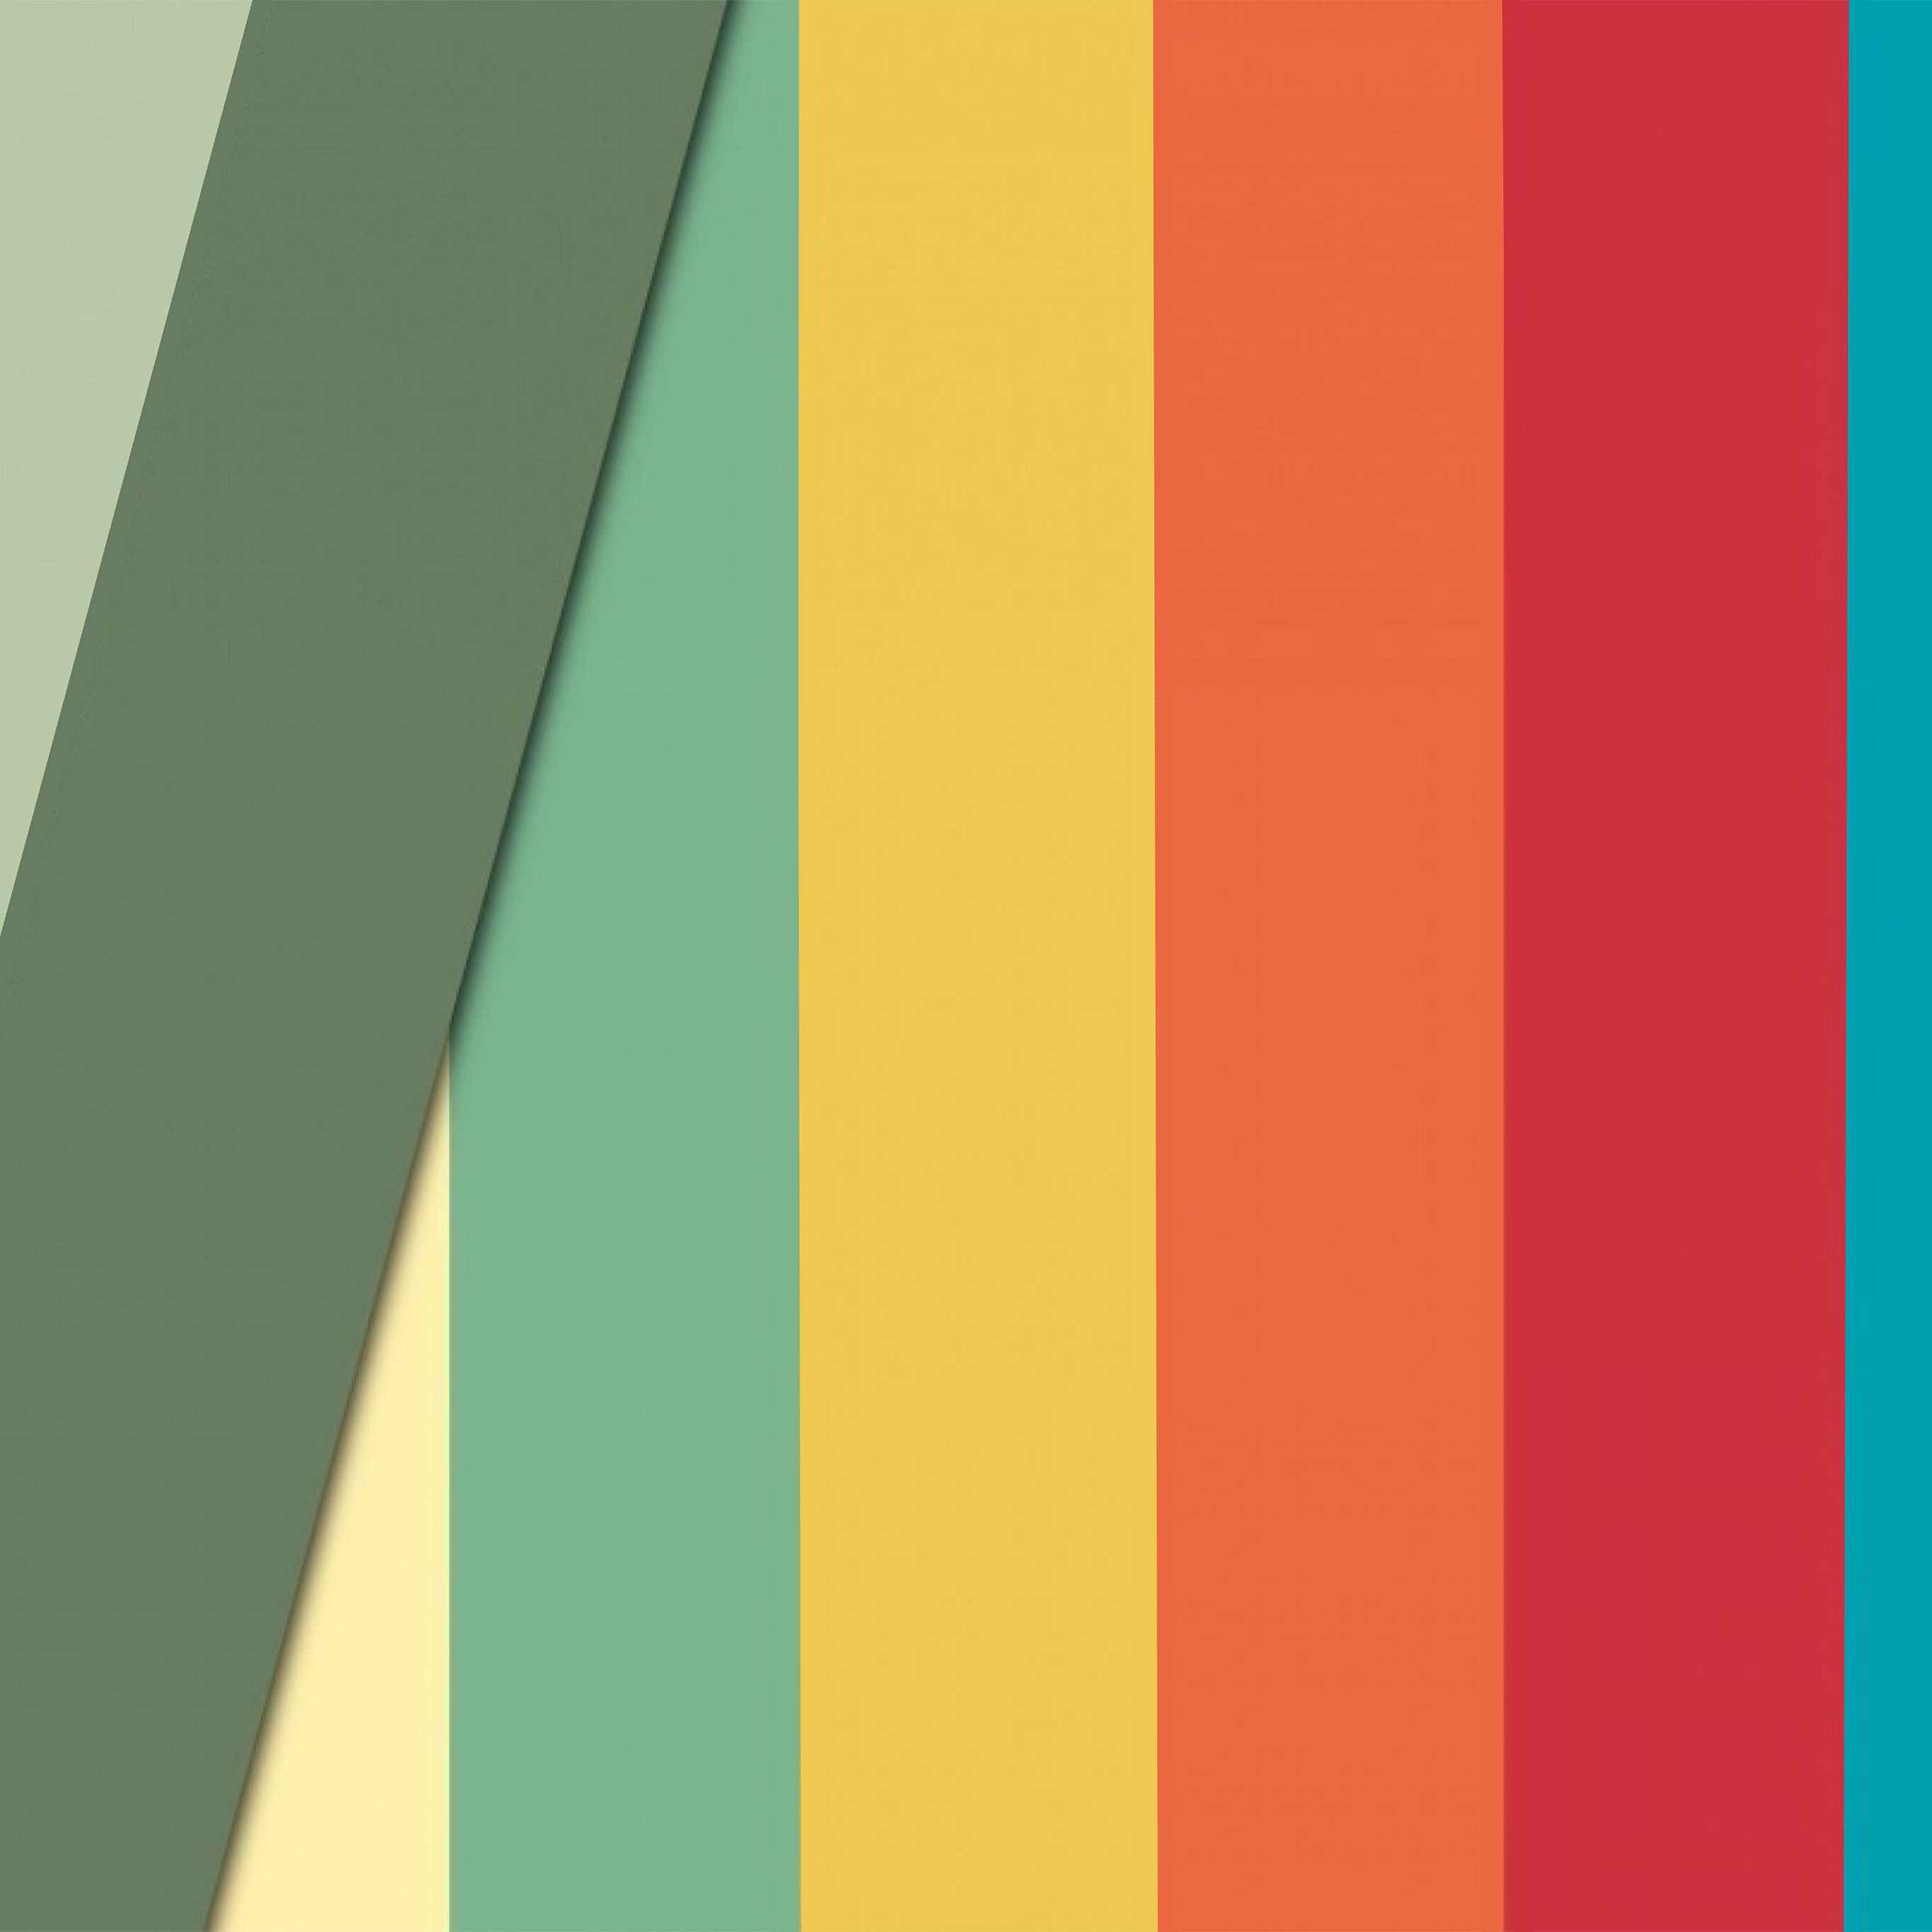 vn58-lines-rainbow-color-pattern-wallpaper